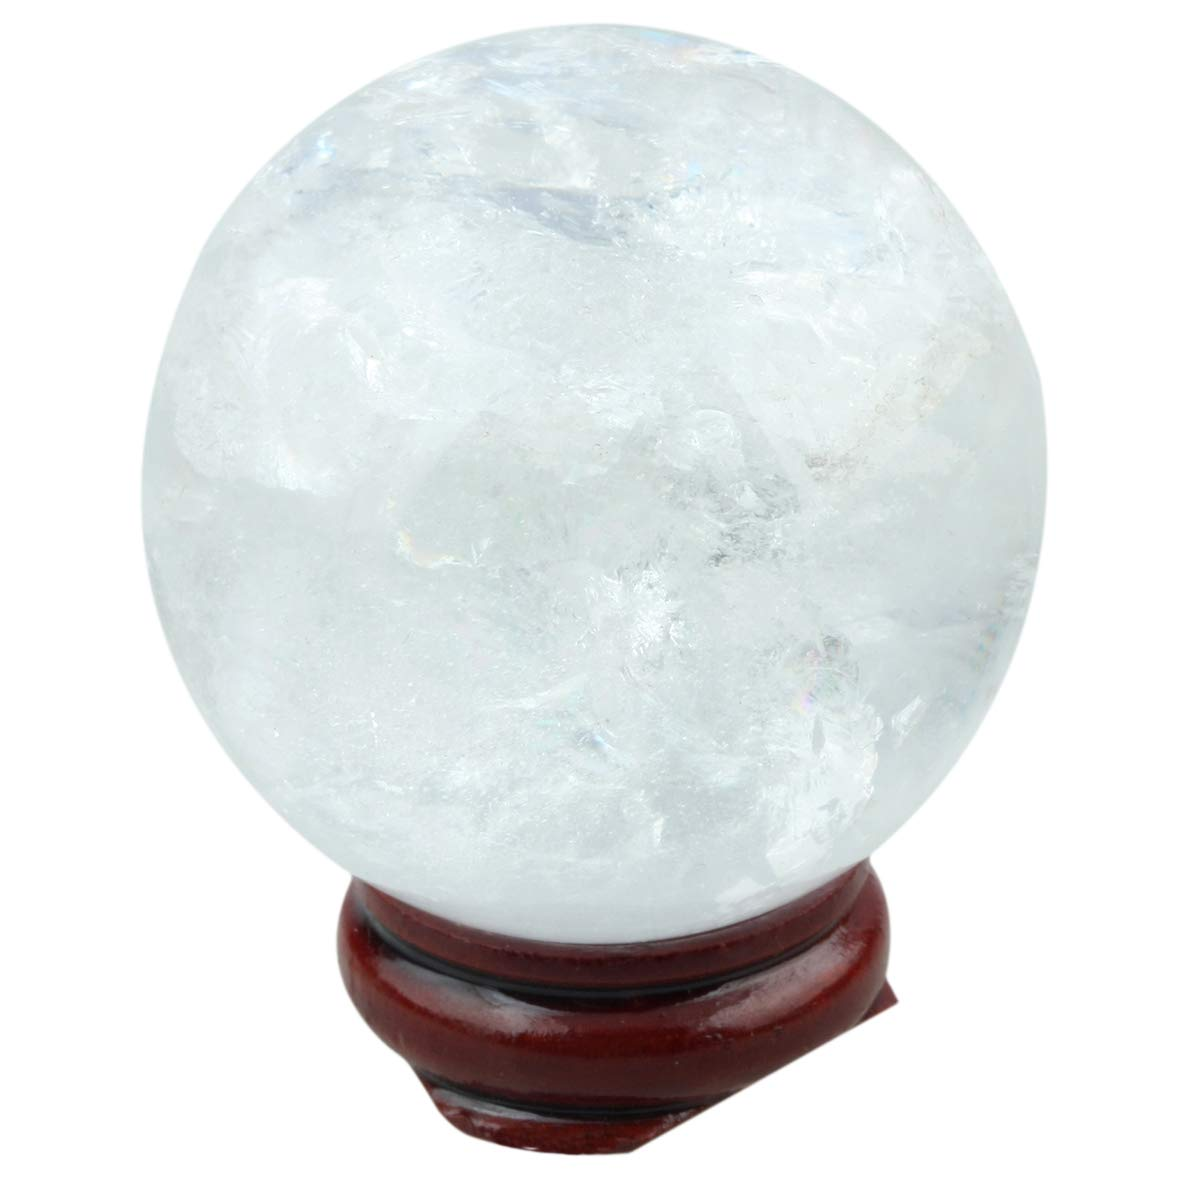 Loveliome 40 mm Tiger Iron Gem Healing Crystal Ball Home Decoration Fengshui Divination Sphere with Wood Stand